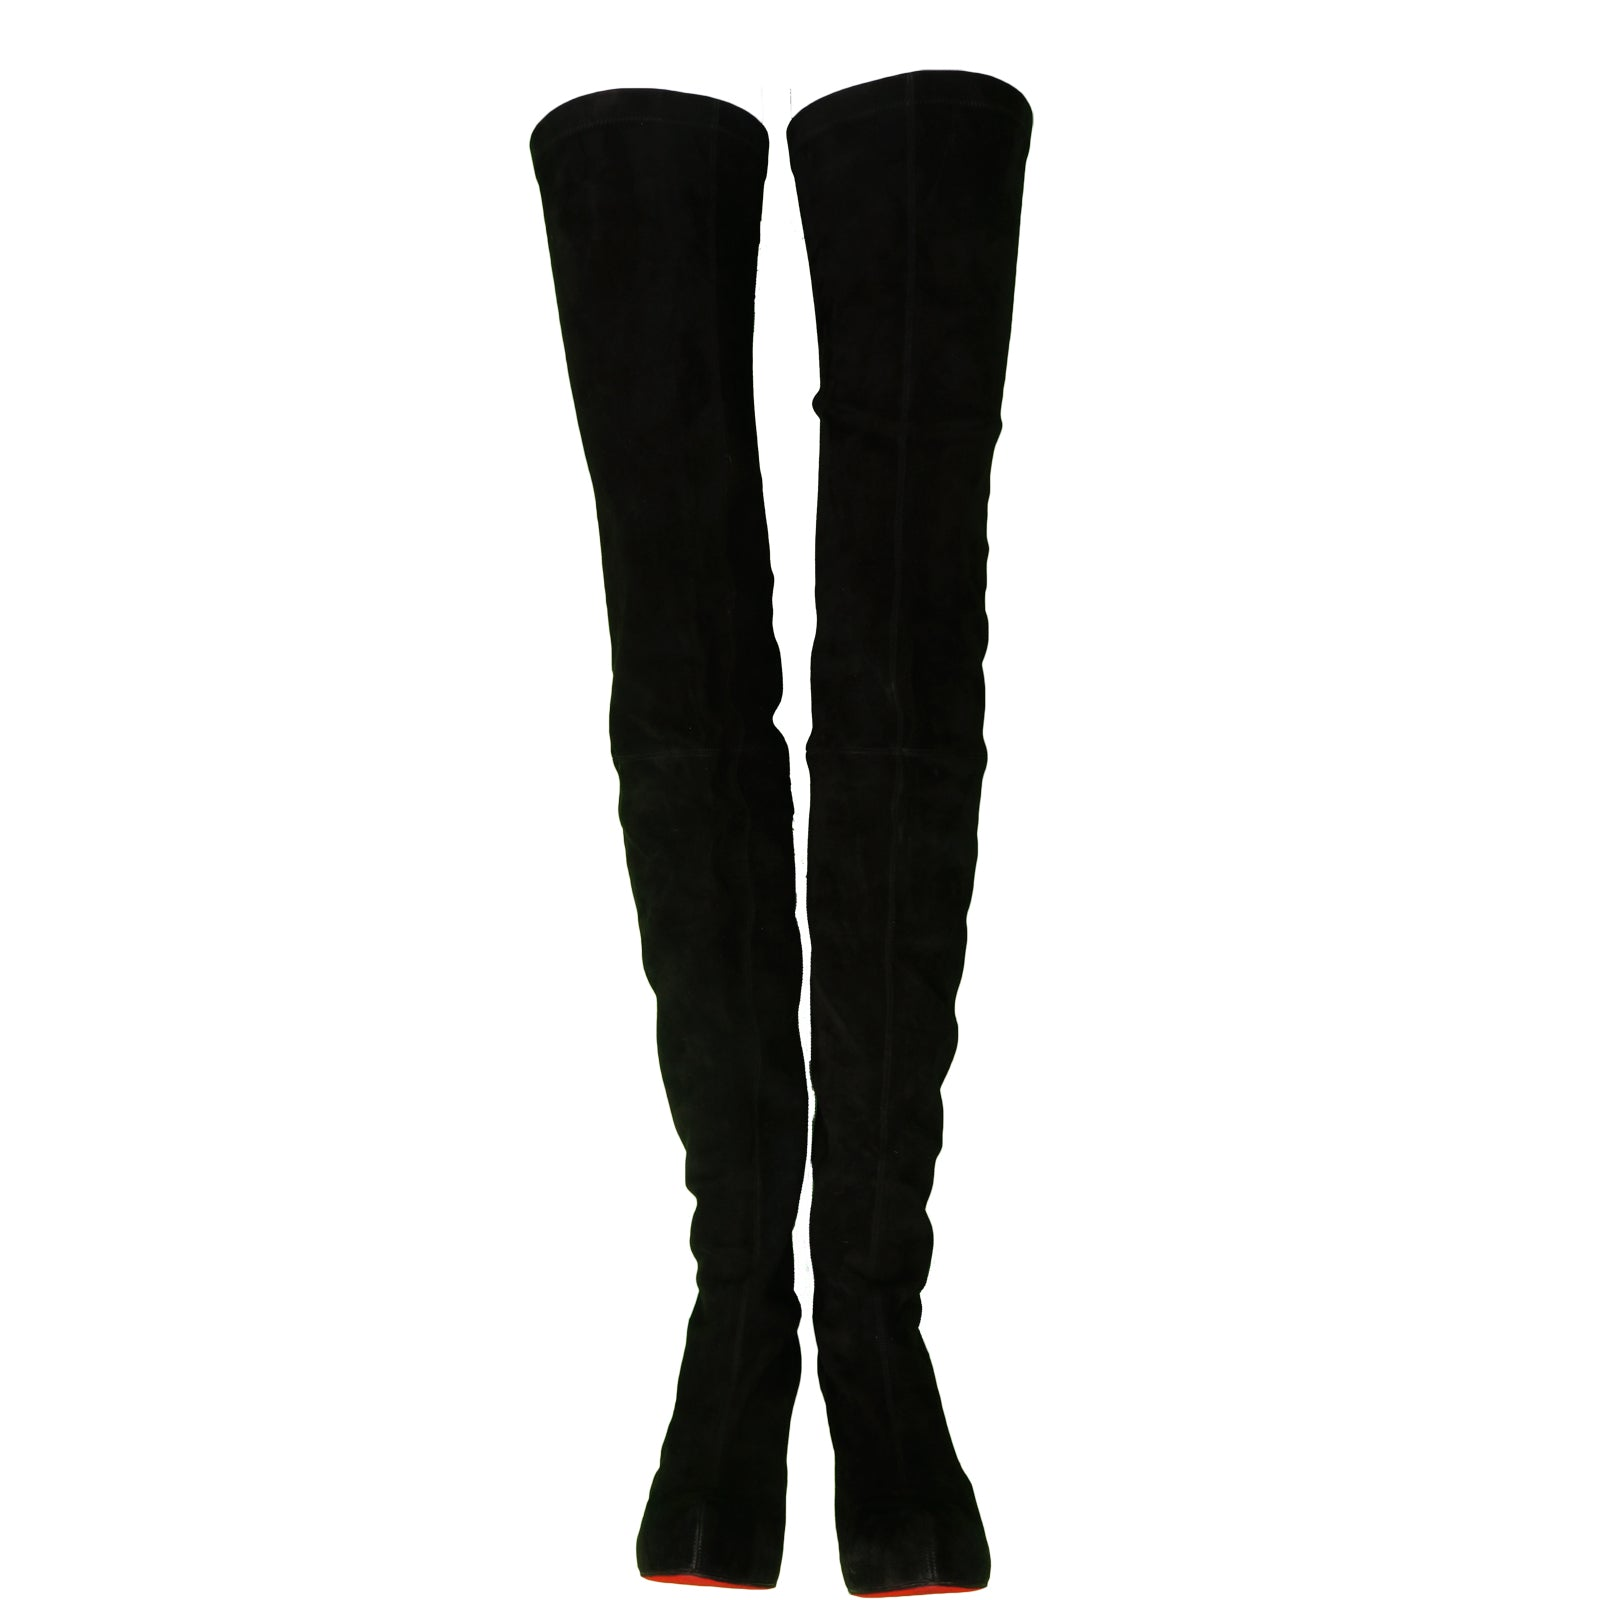 fcfafbf9fb61 promo code for christian louboutin monica 120 suede thigh high boots shop  the best value on